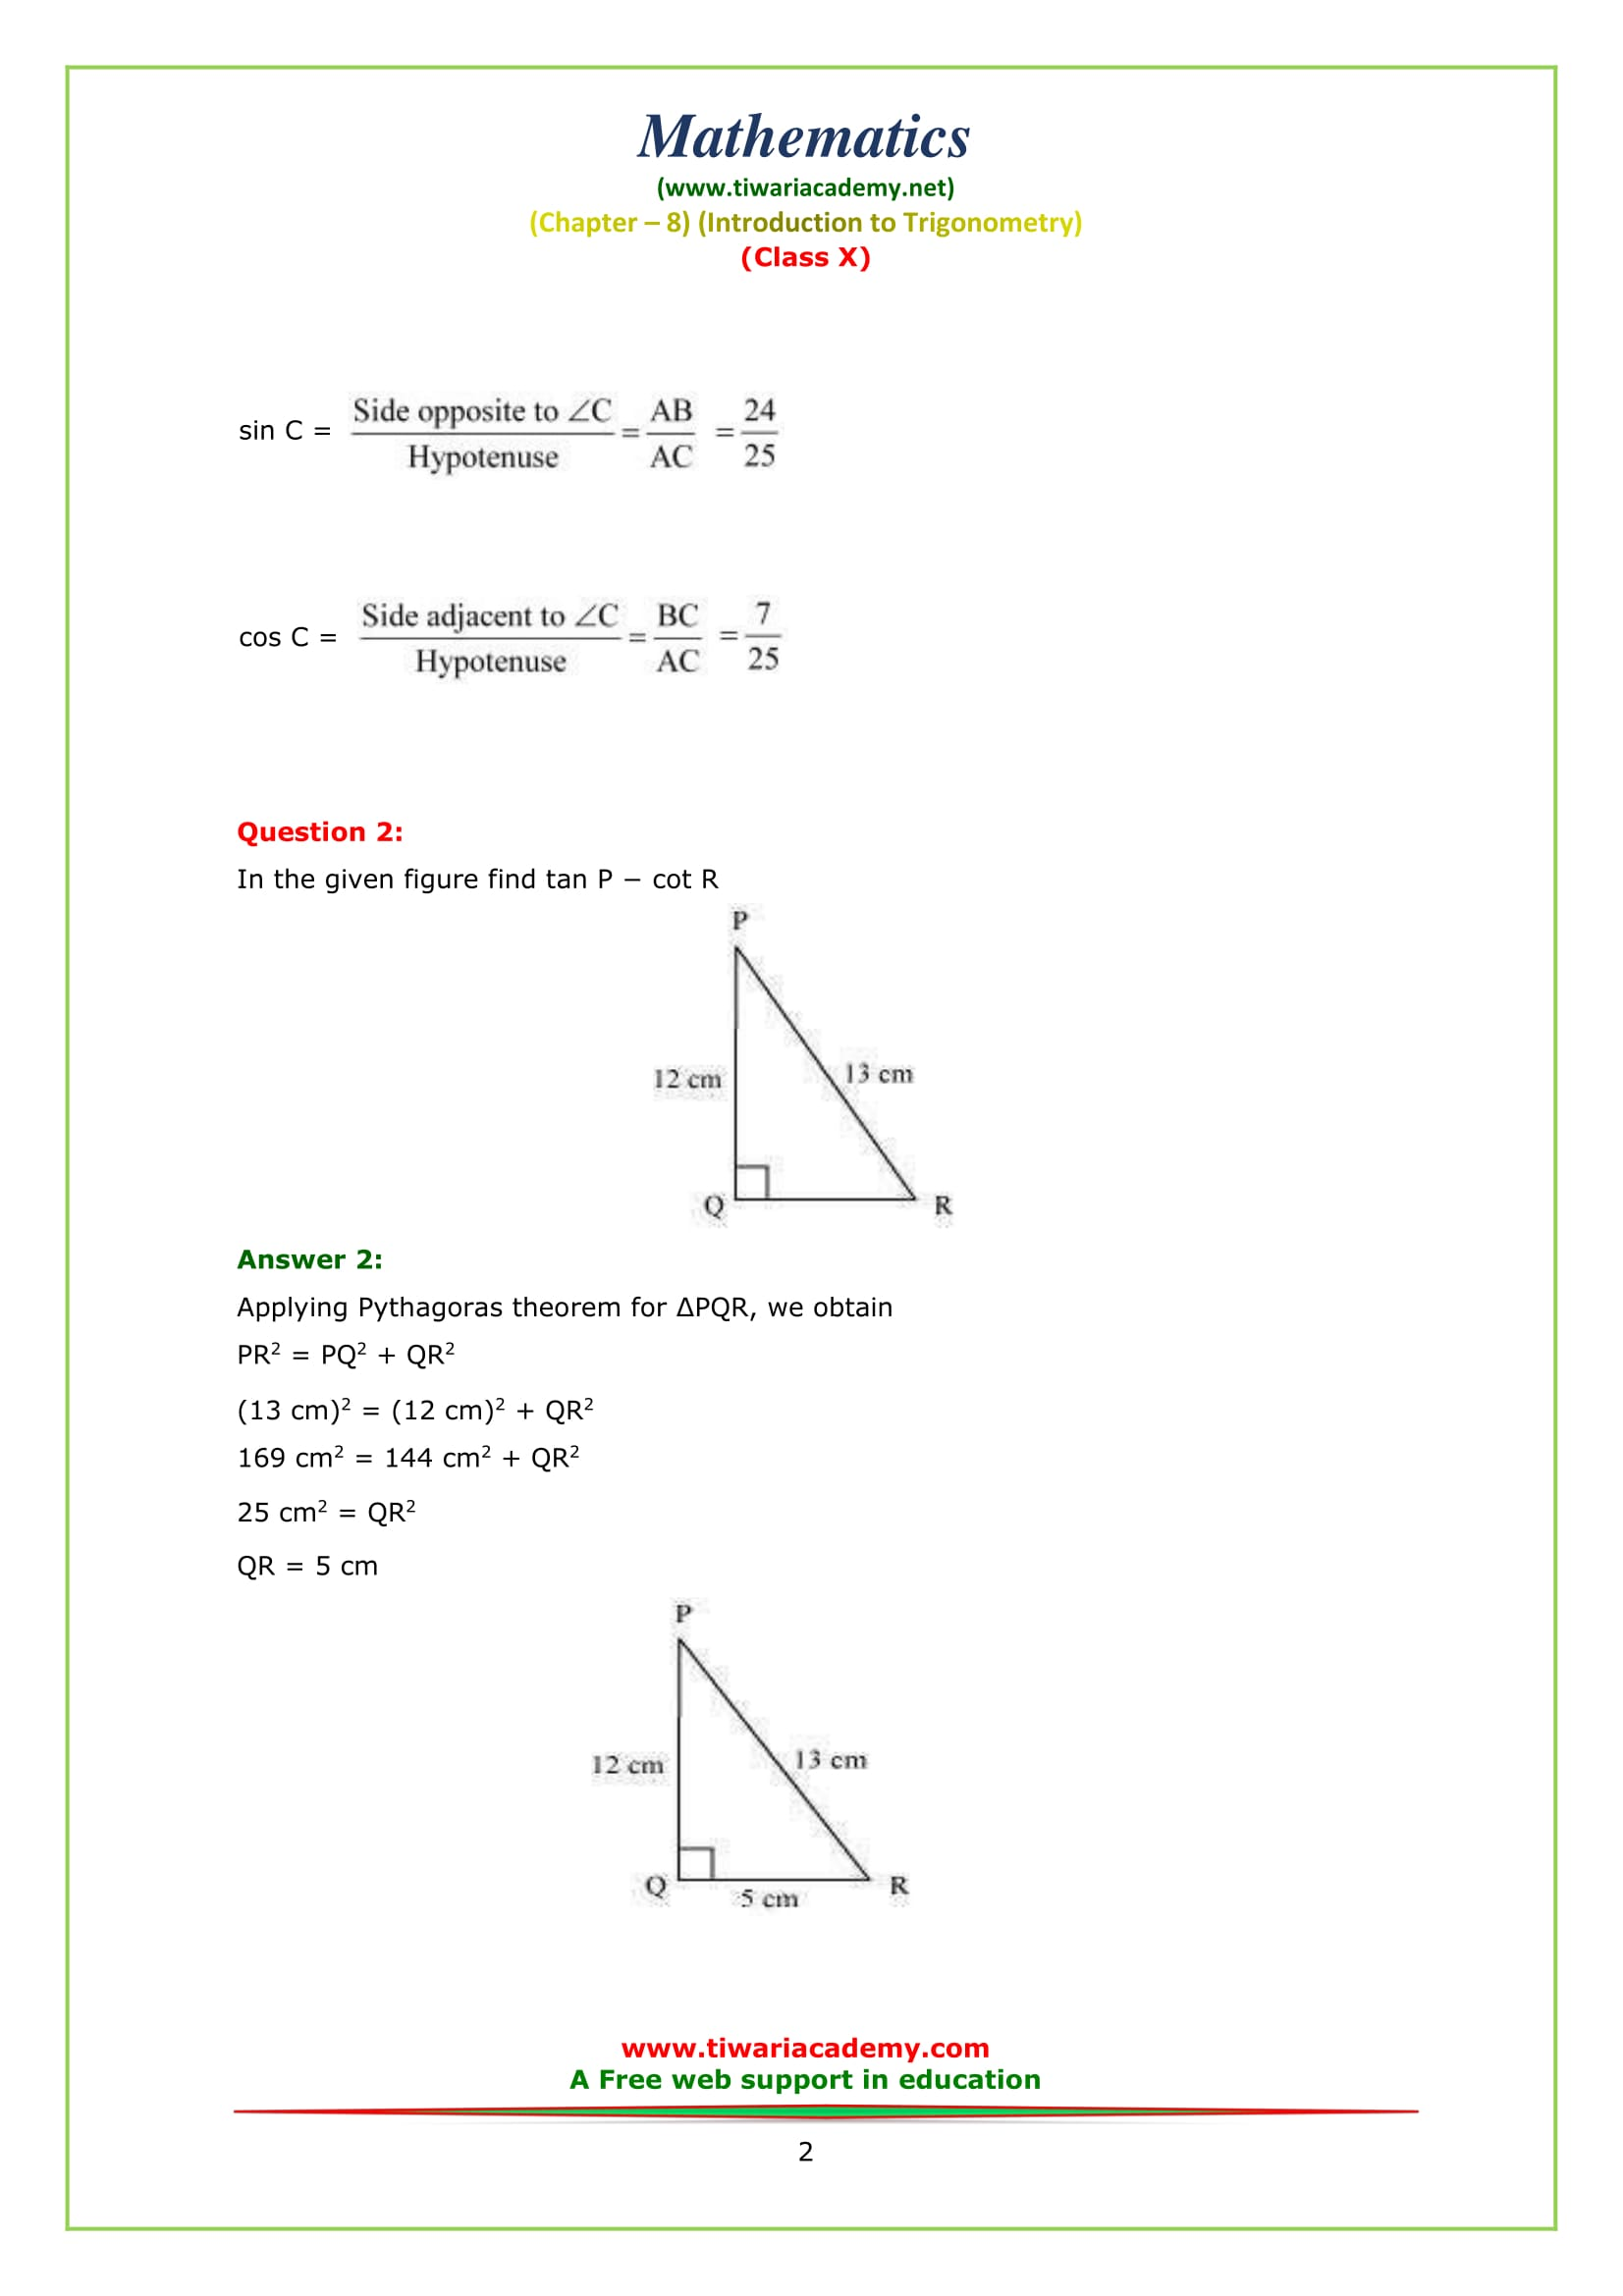 NCERT Solutions for Class 10 Maths Chapter 8 Exercise 8.1 Question 2